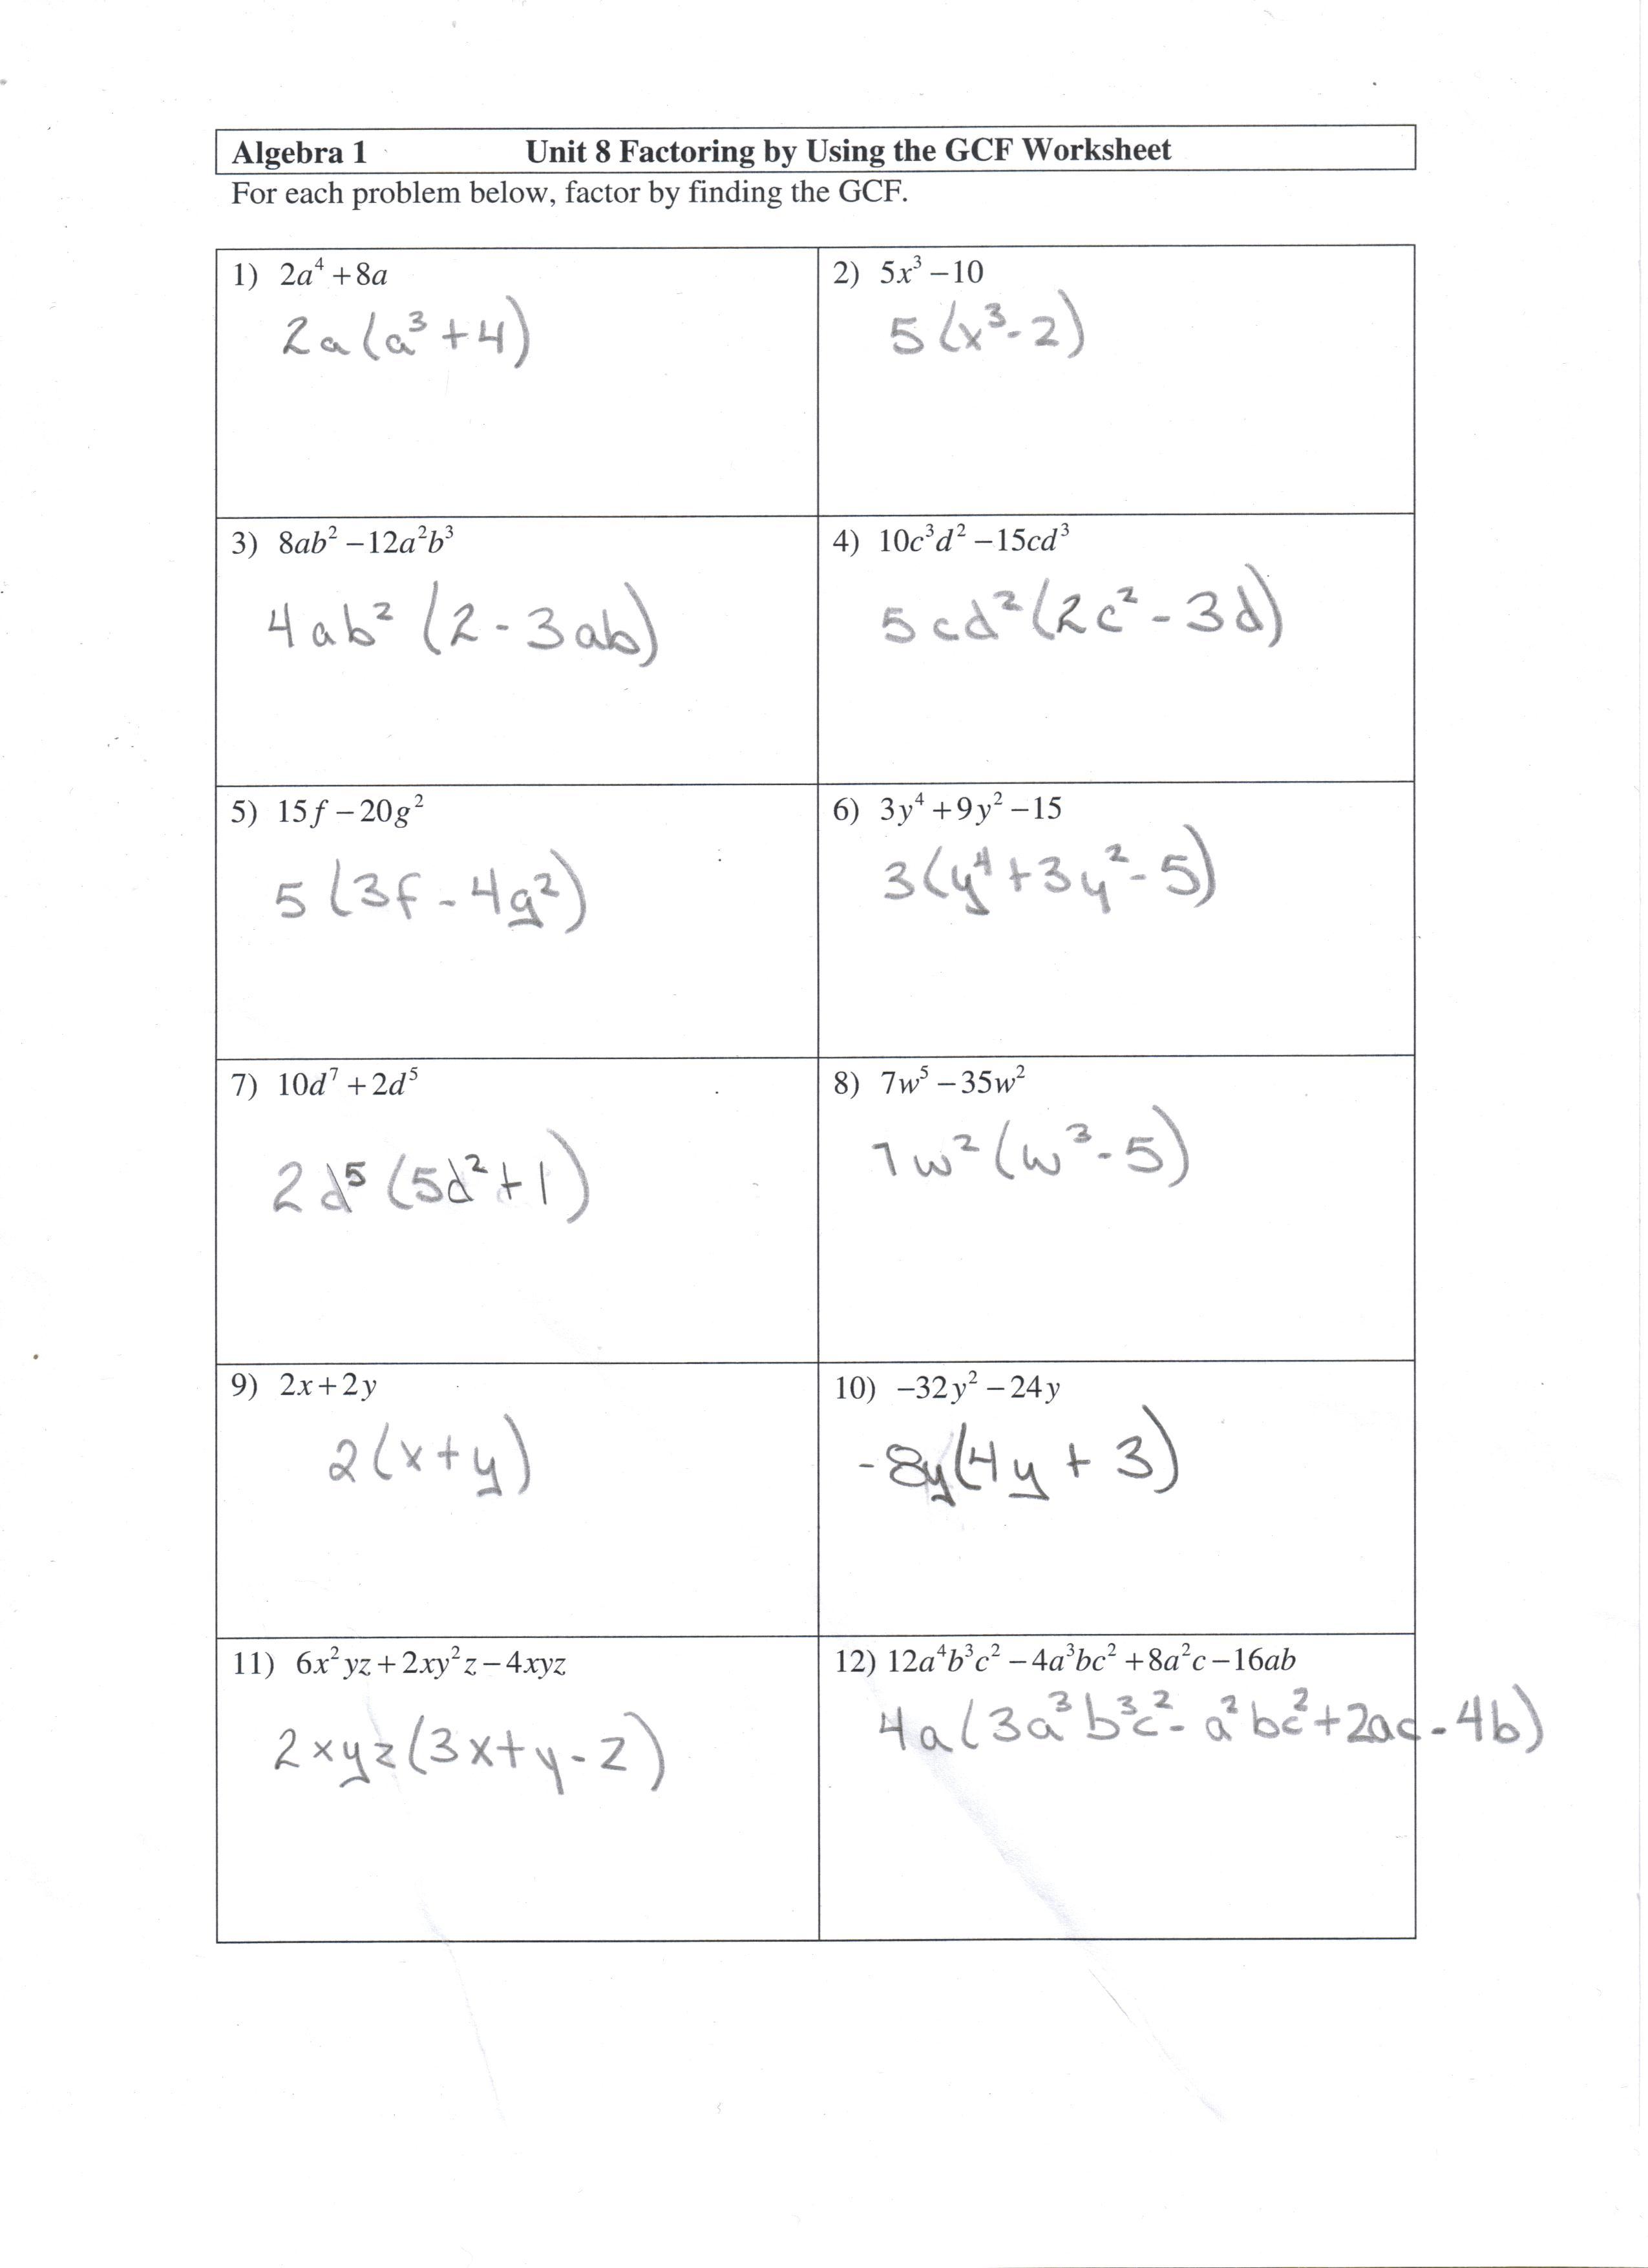 Factoring GCF worksheet and answers - Math 10